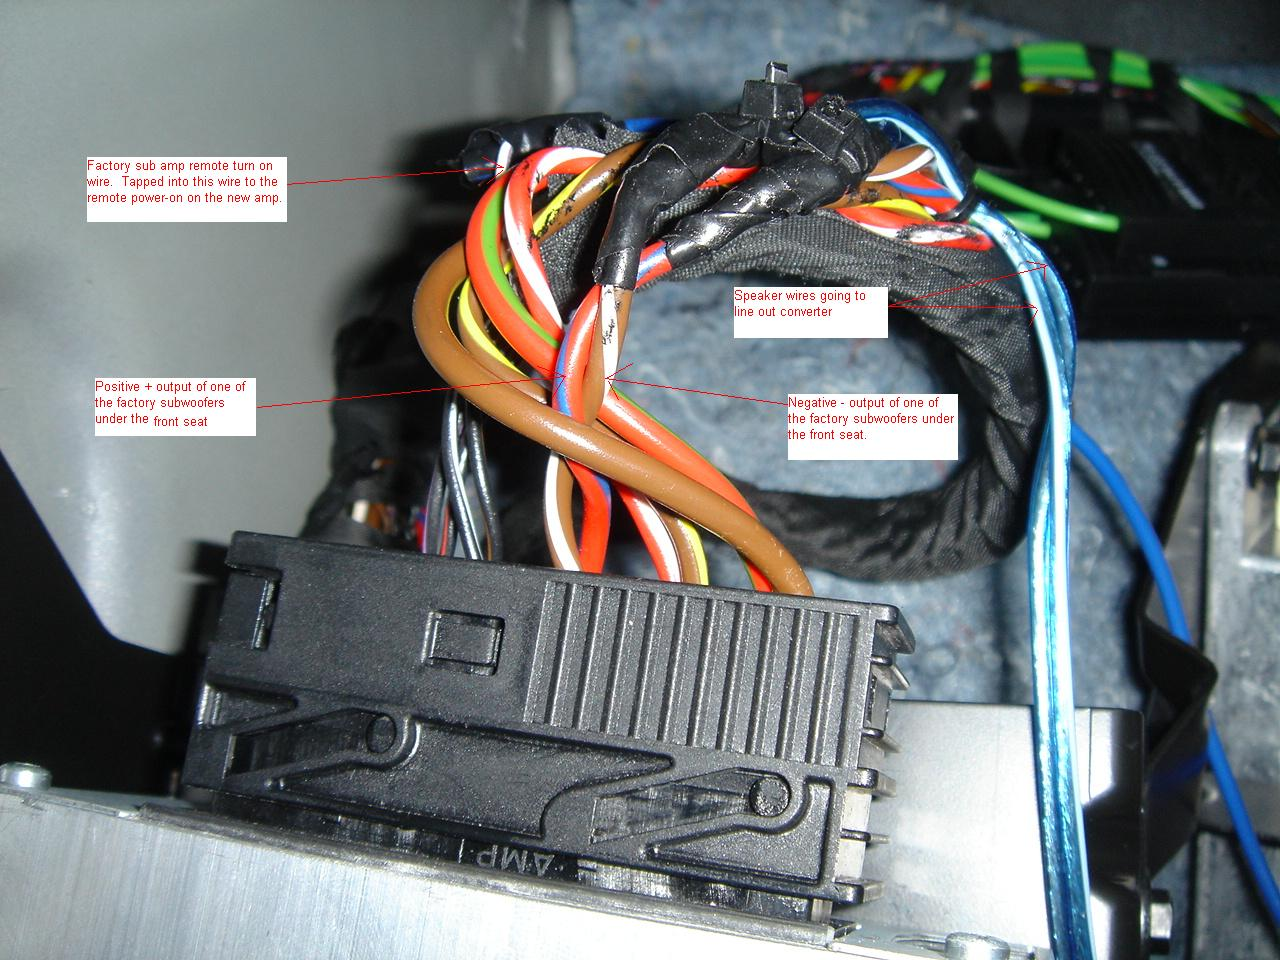 hight resolution of how to add an aftermarket sub amp dsc01015 jpg